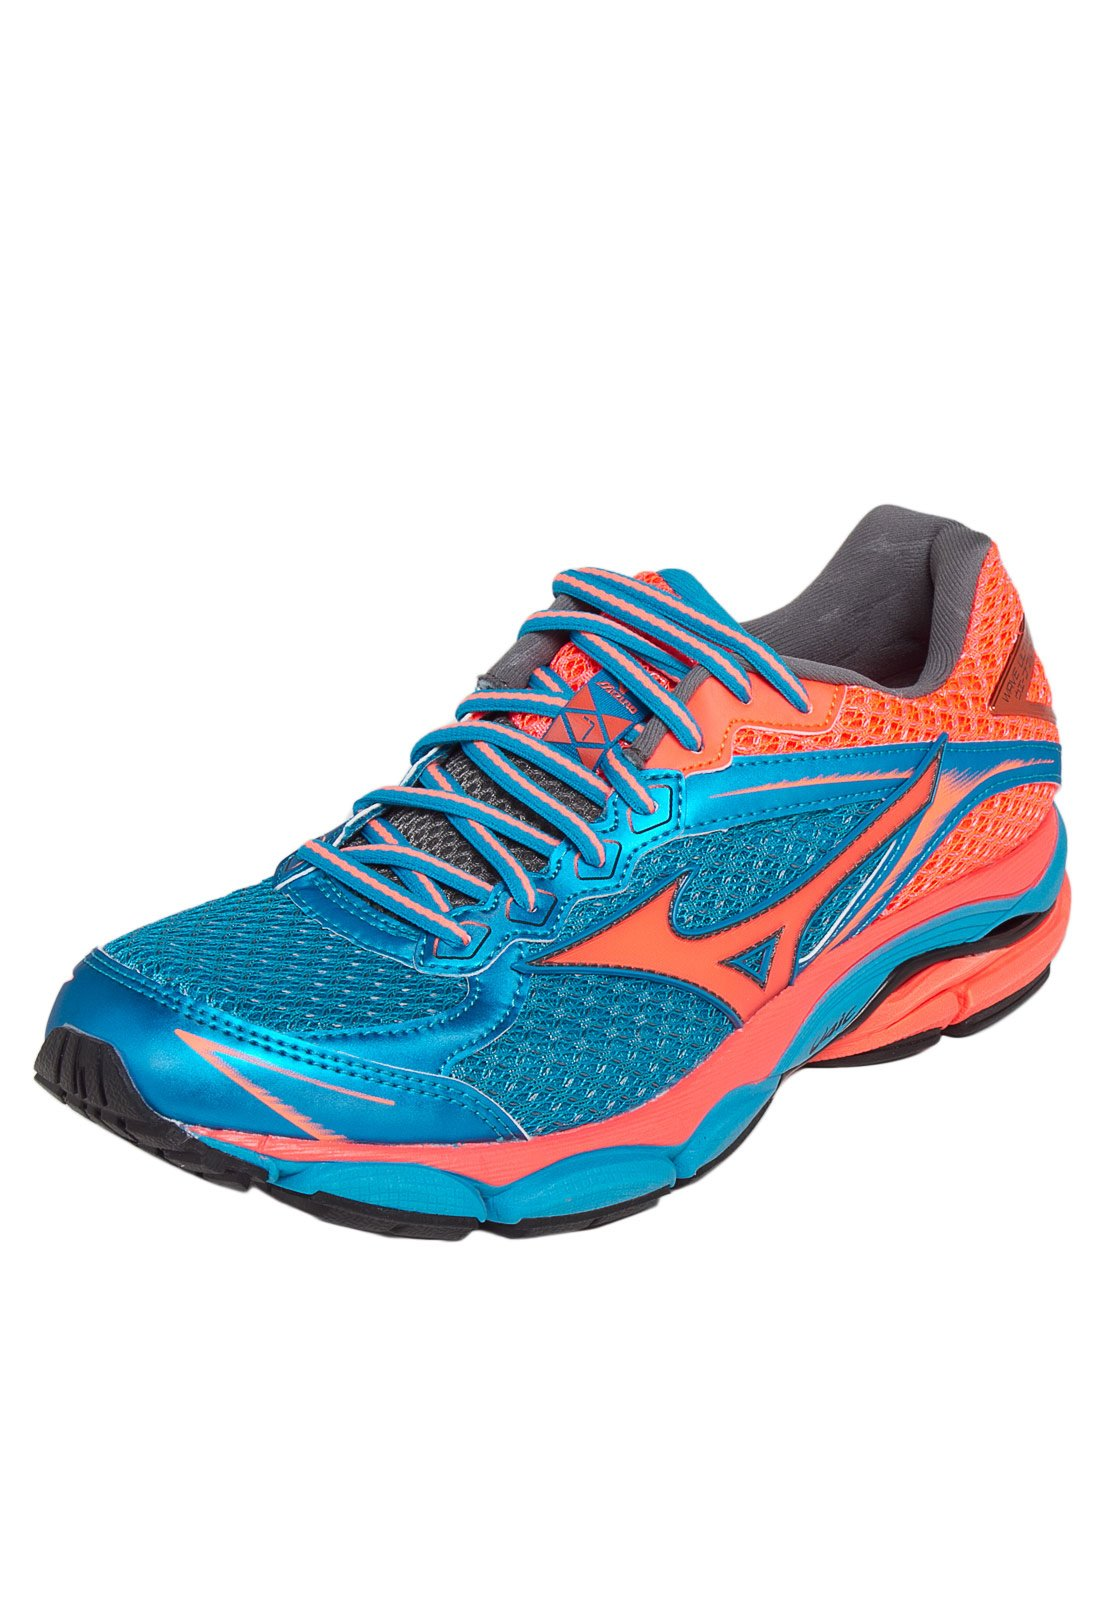 mizuno wave ultima 7 azul e laranja junior